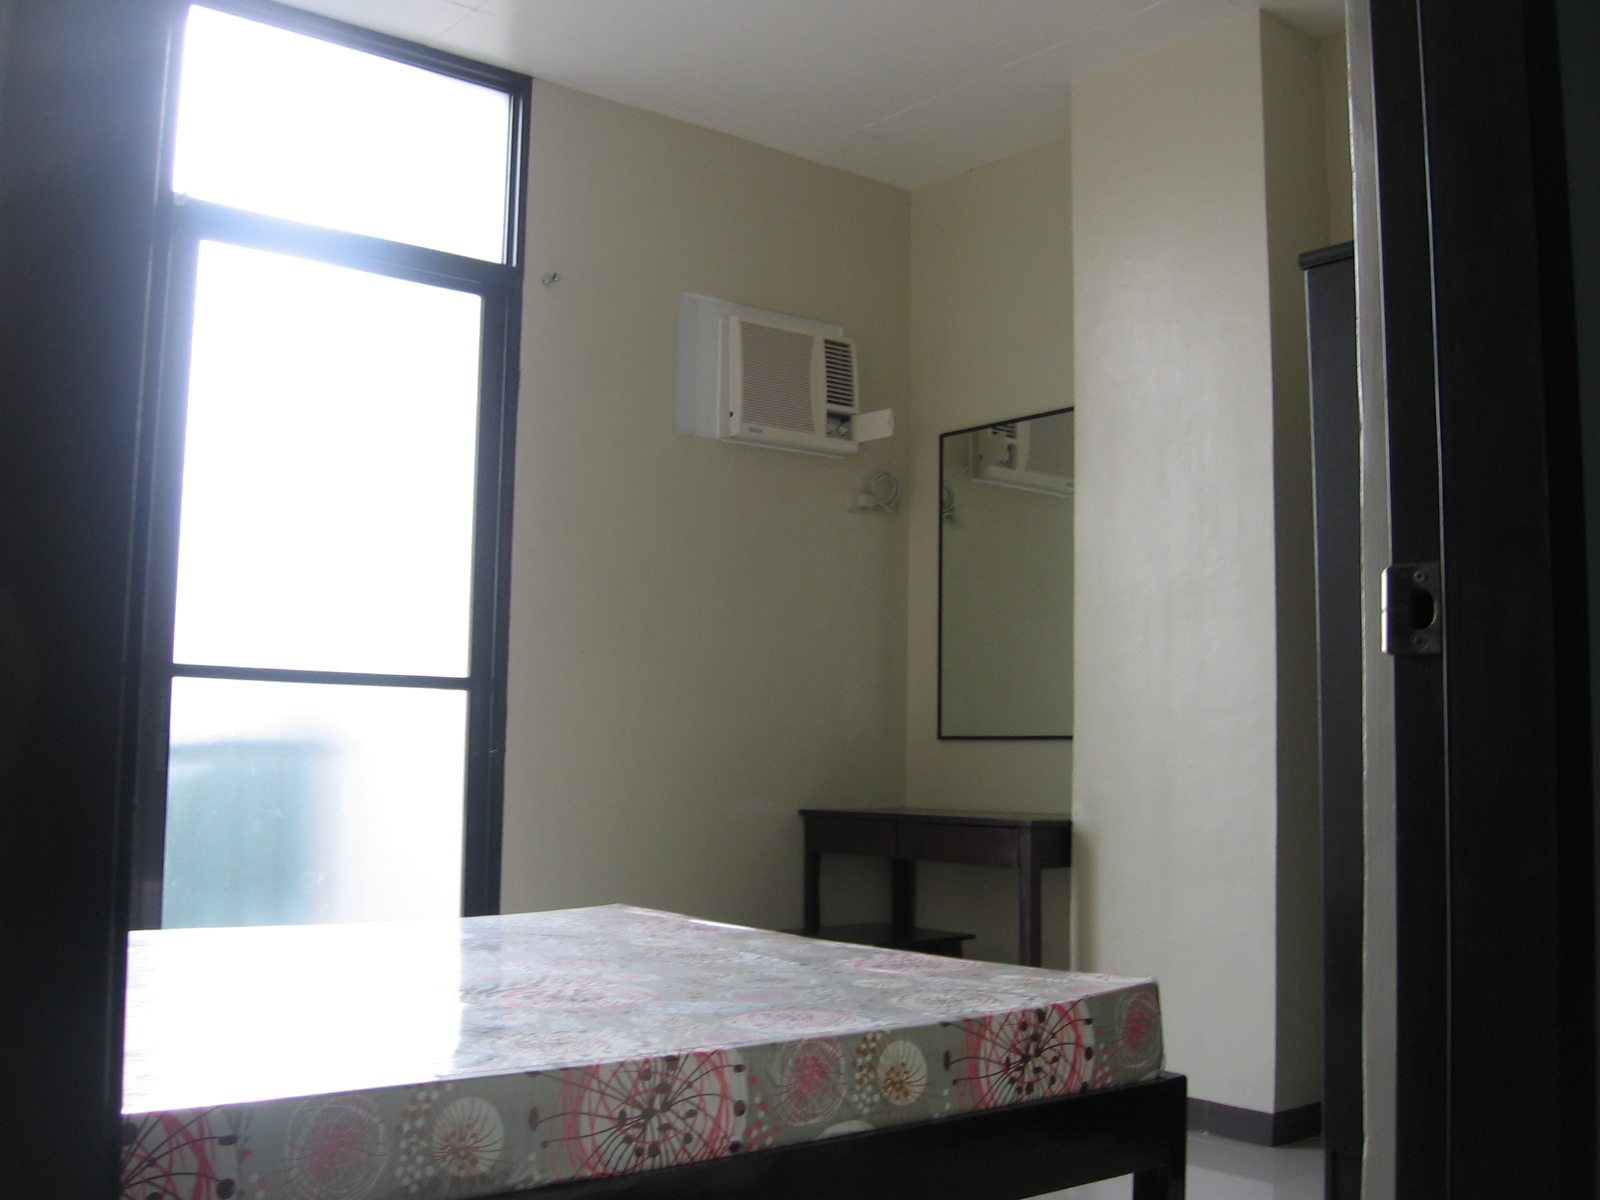 2-bedrooms-apartment-located-in-labangon-cebu-city